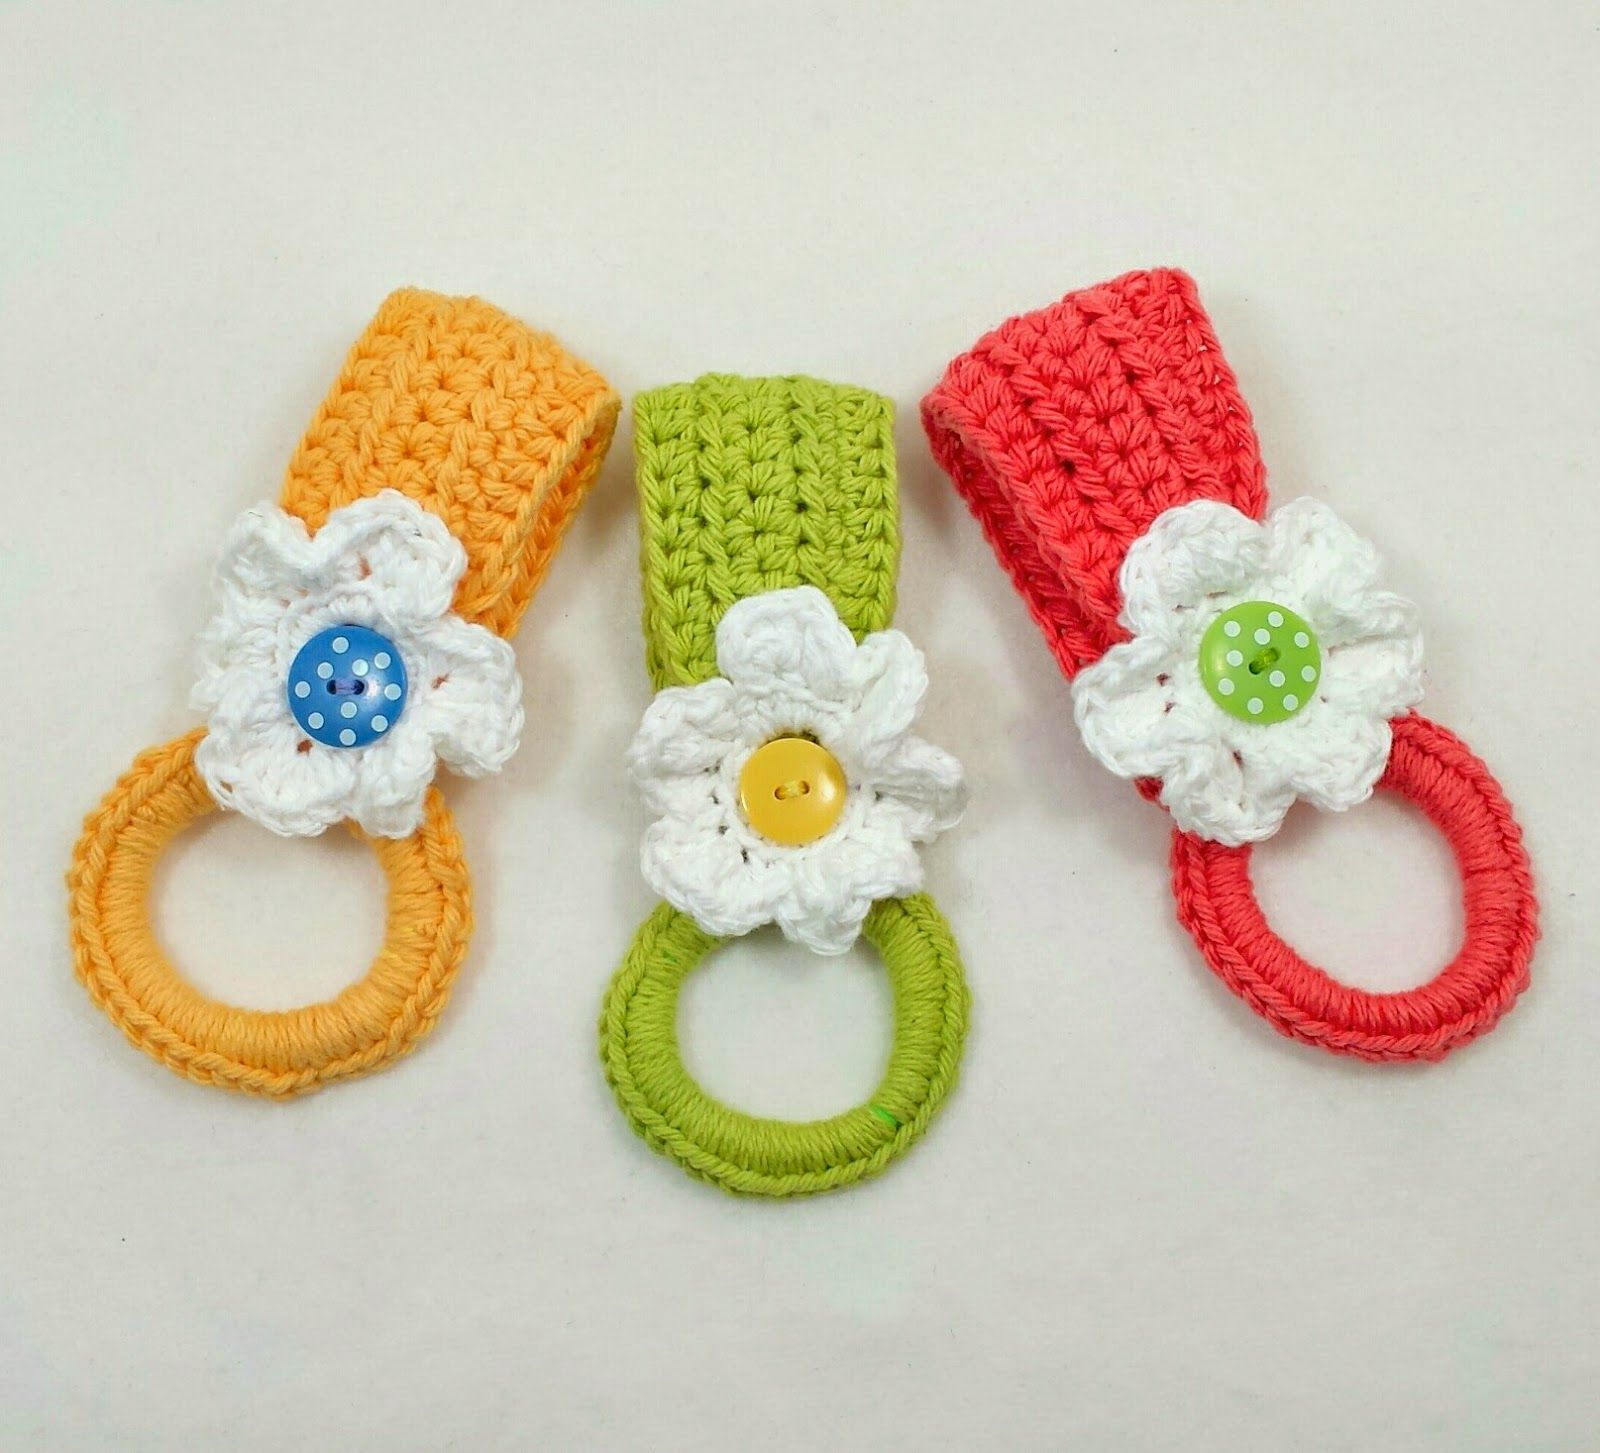 Daisy Towel Holder - Free crochet pattern by Claudia Lowman ...